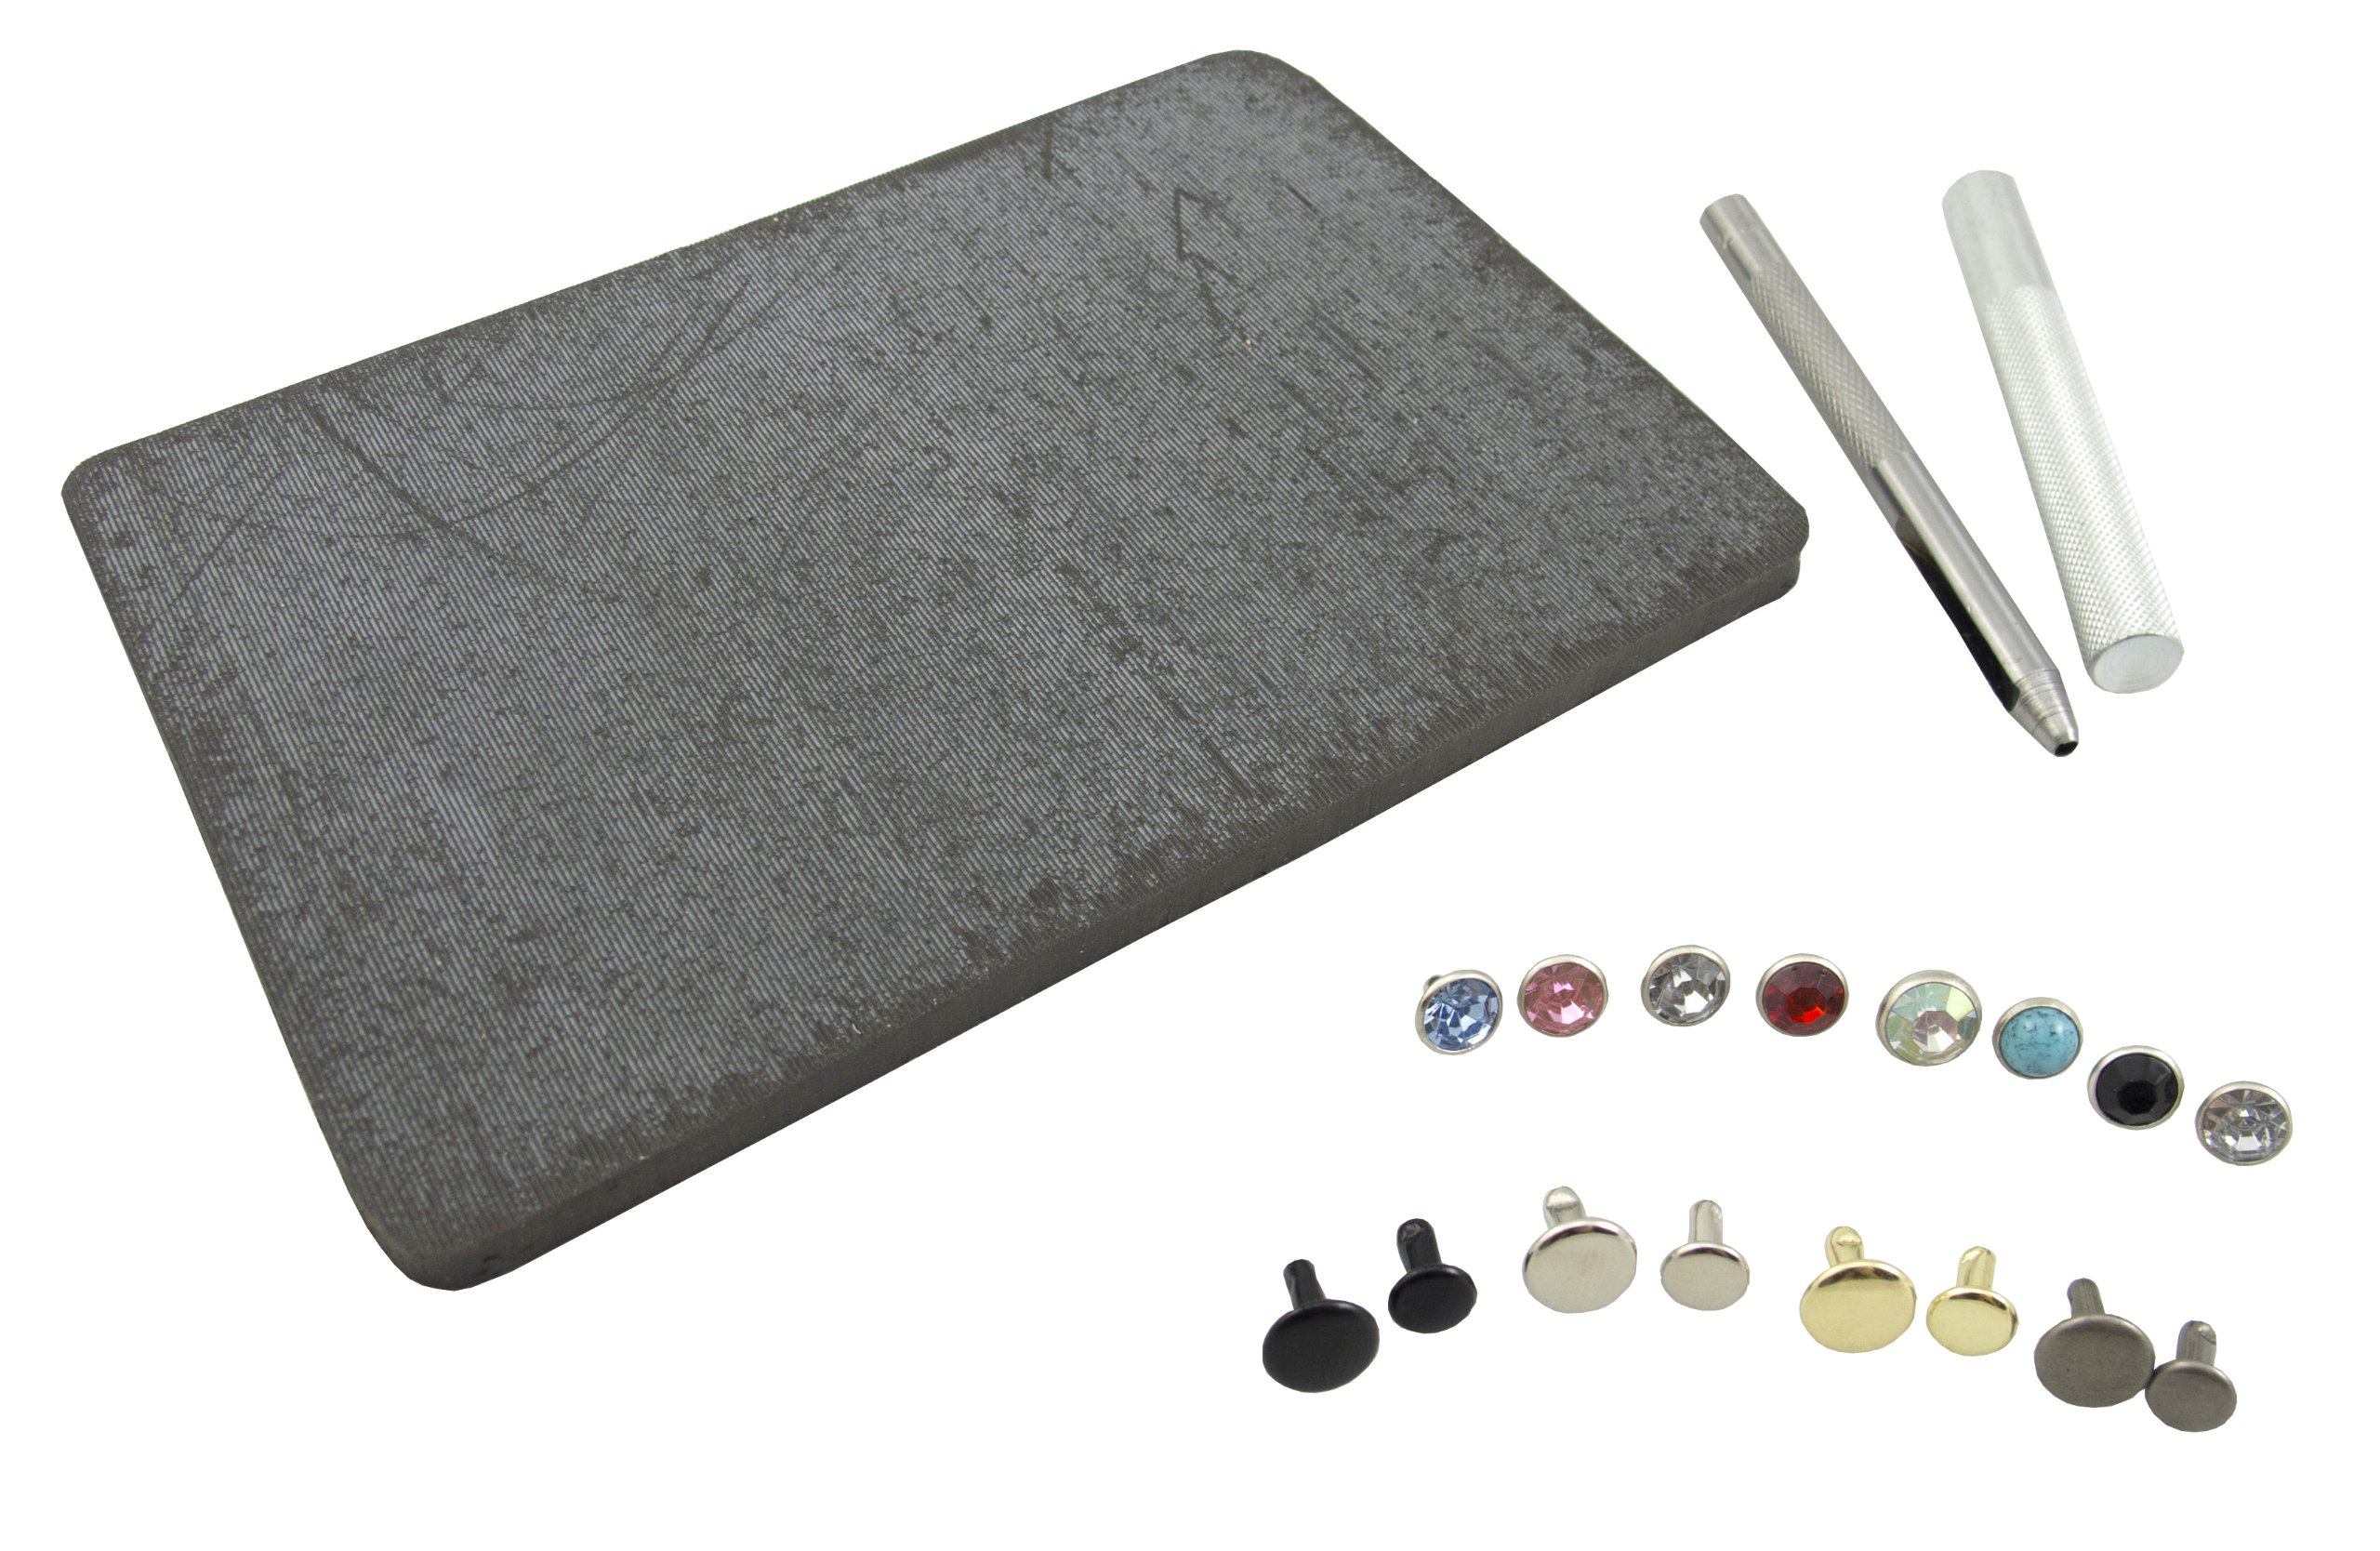 Springfield Leather Company's Decorative Rivet & Crystal Rivet Set Kit